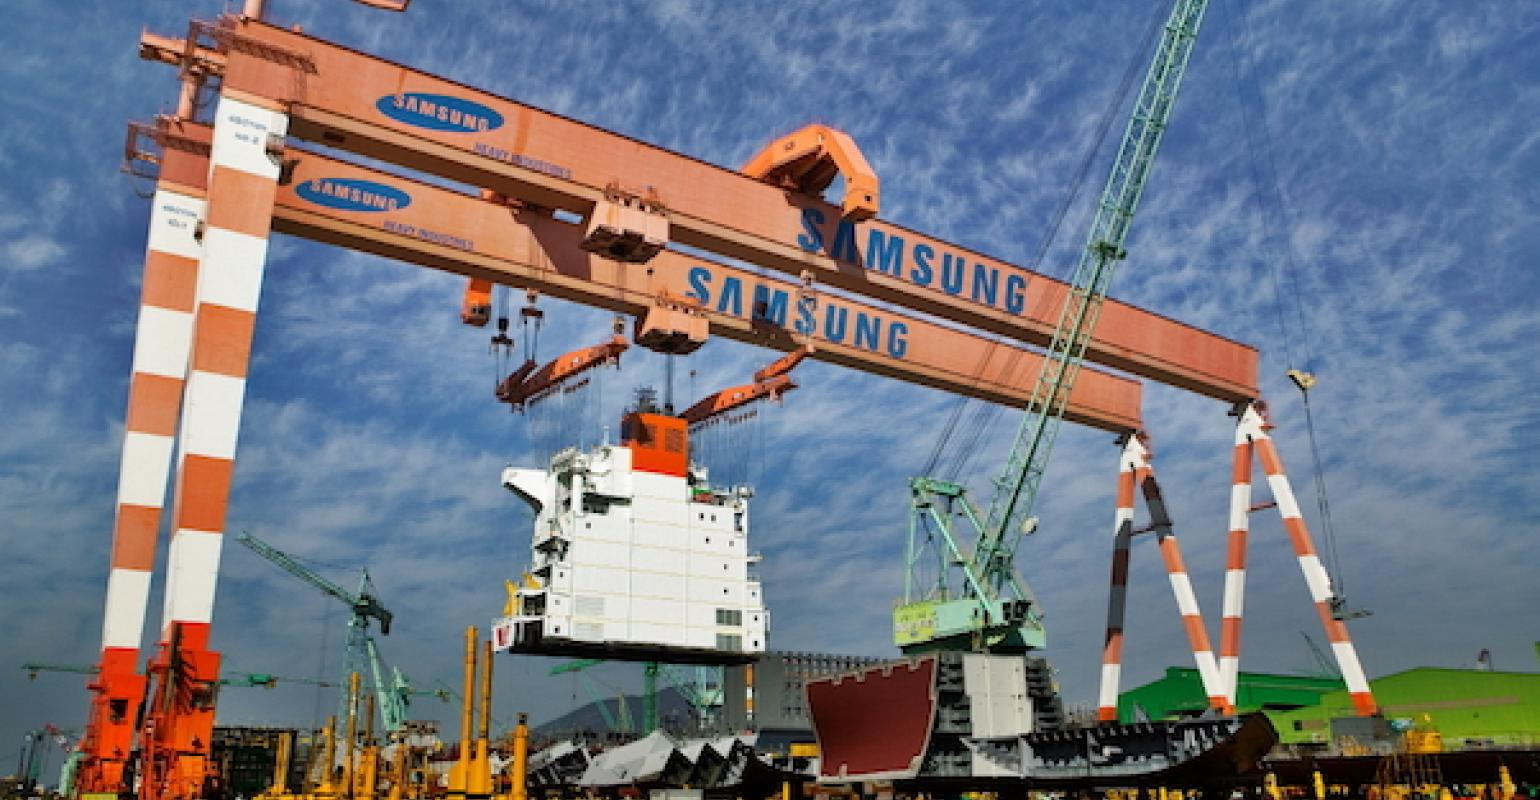 Samsung Heavy wins $2.5 bln order from European company